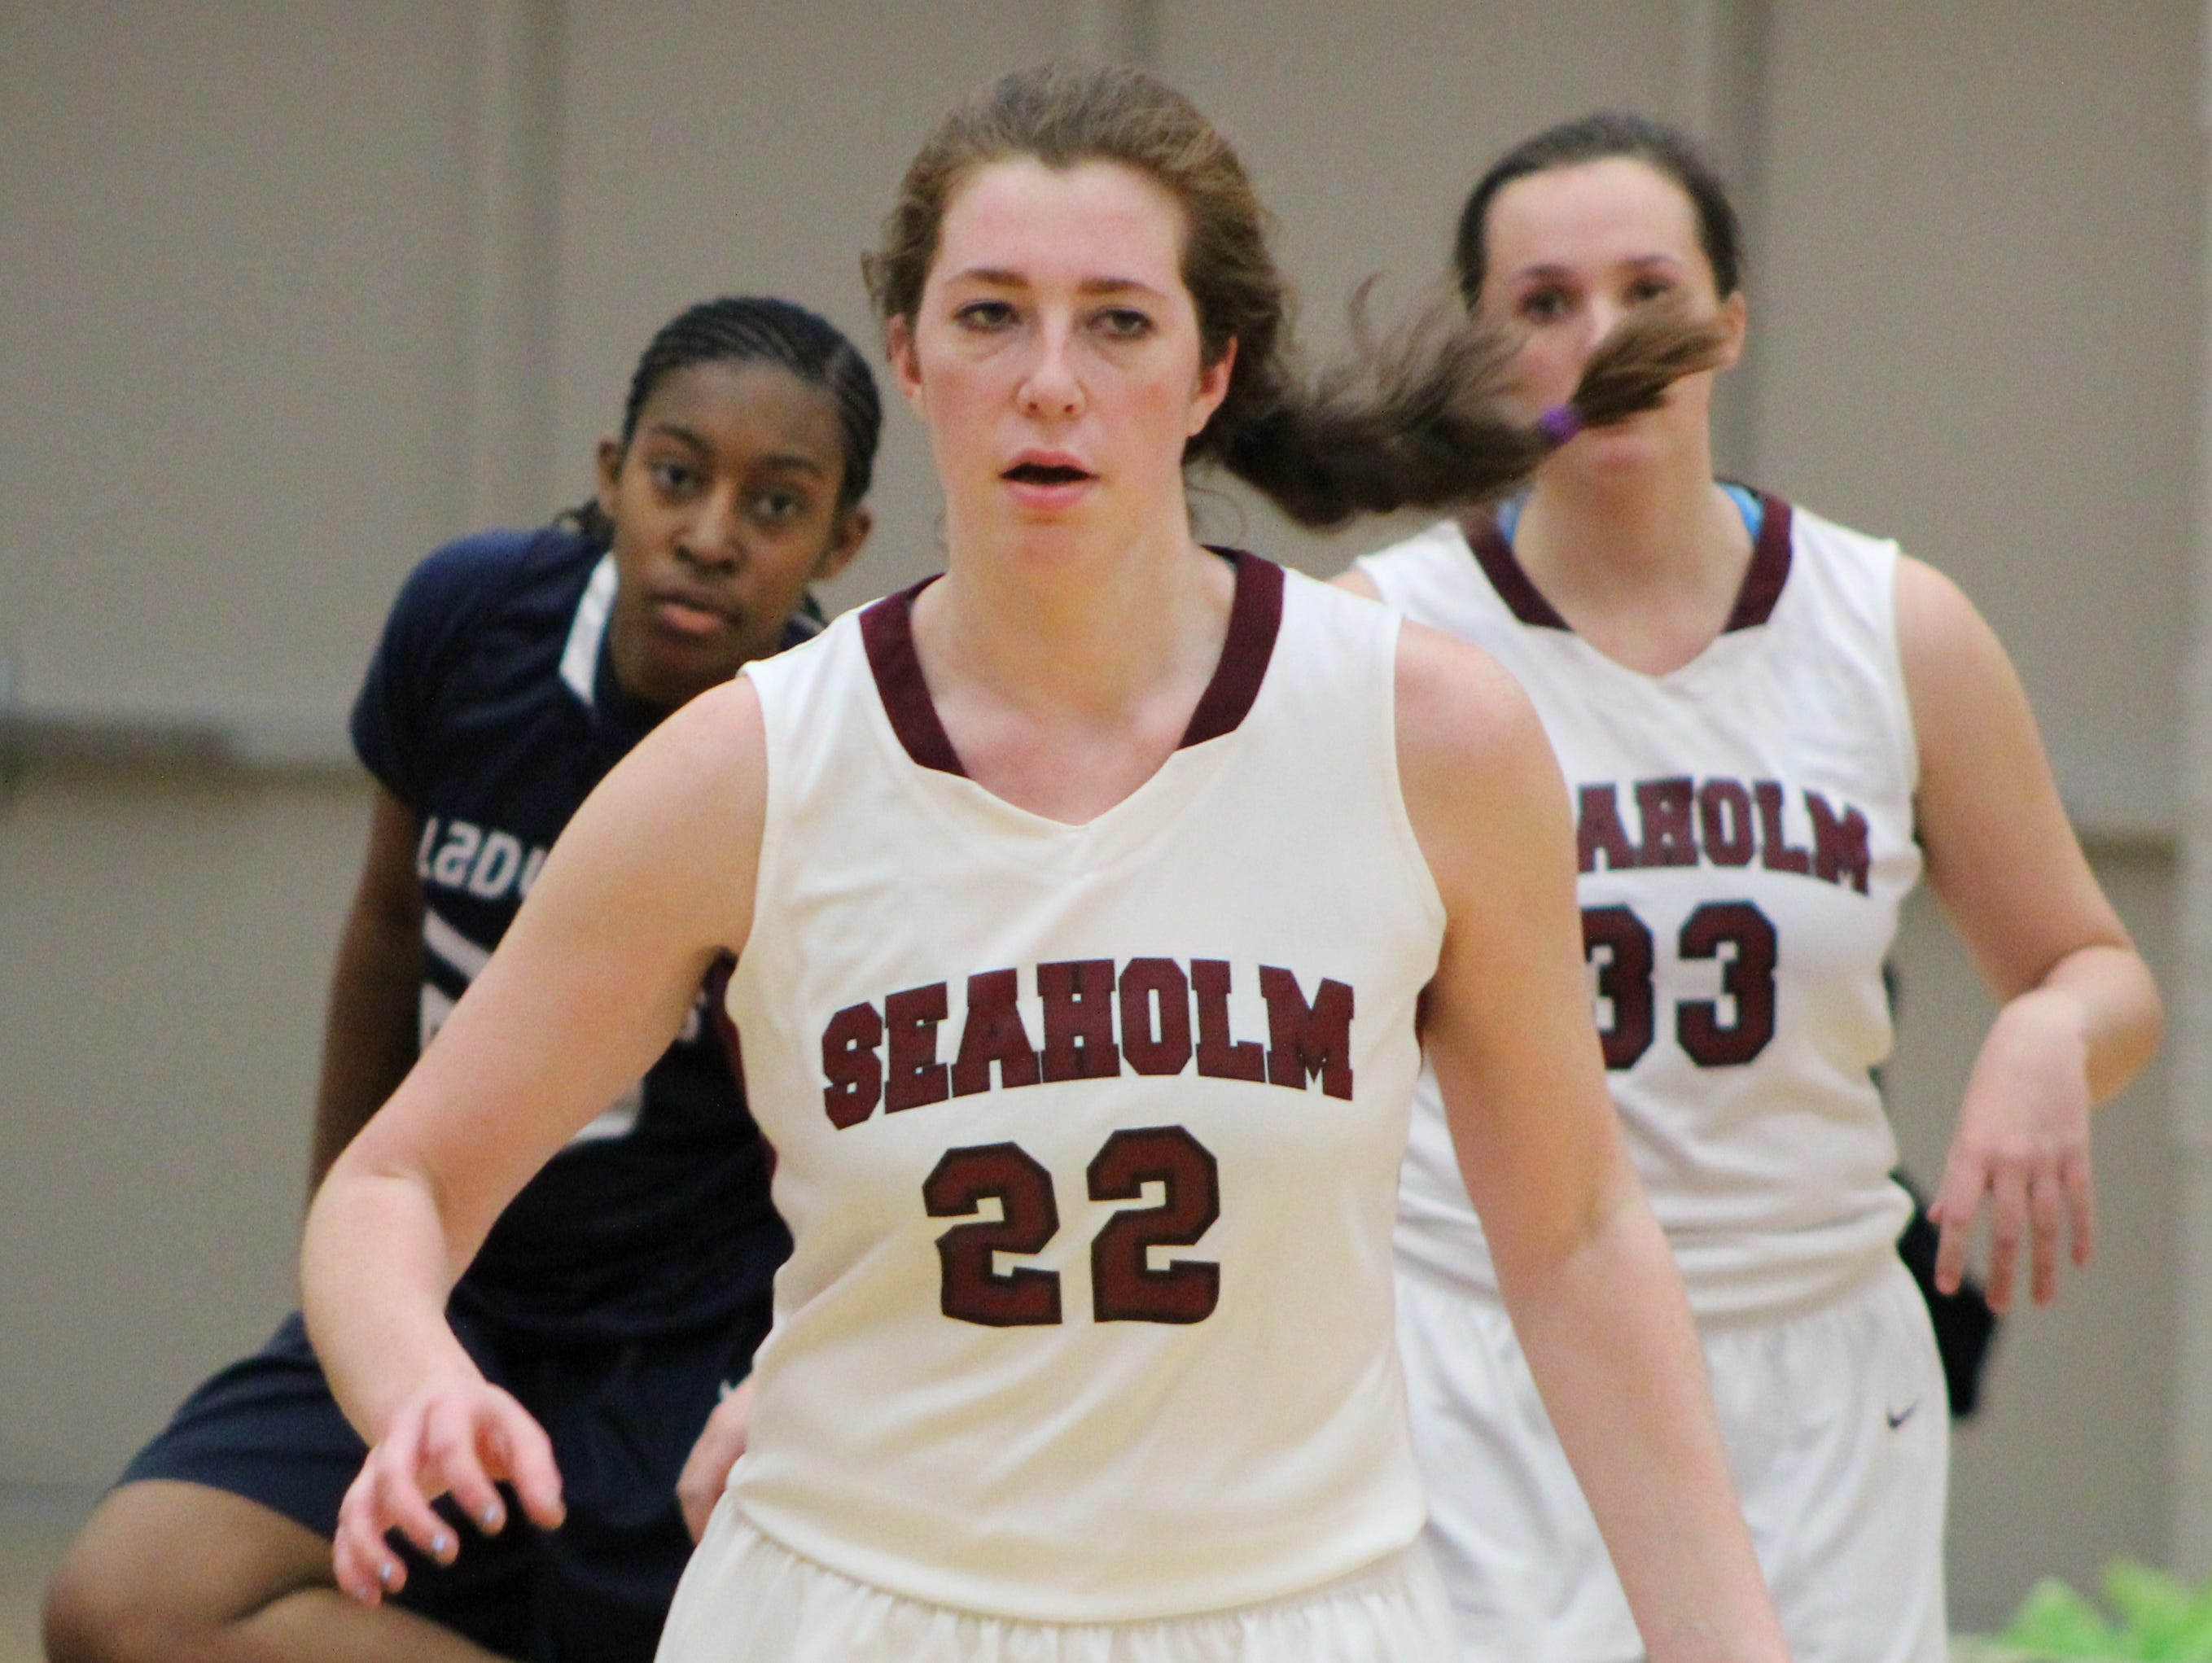 Seaholm sophomore center Dana Hoerman finished with 16 rebounds in Tuesday's victory over Troy Athens.